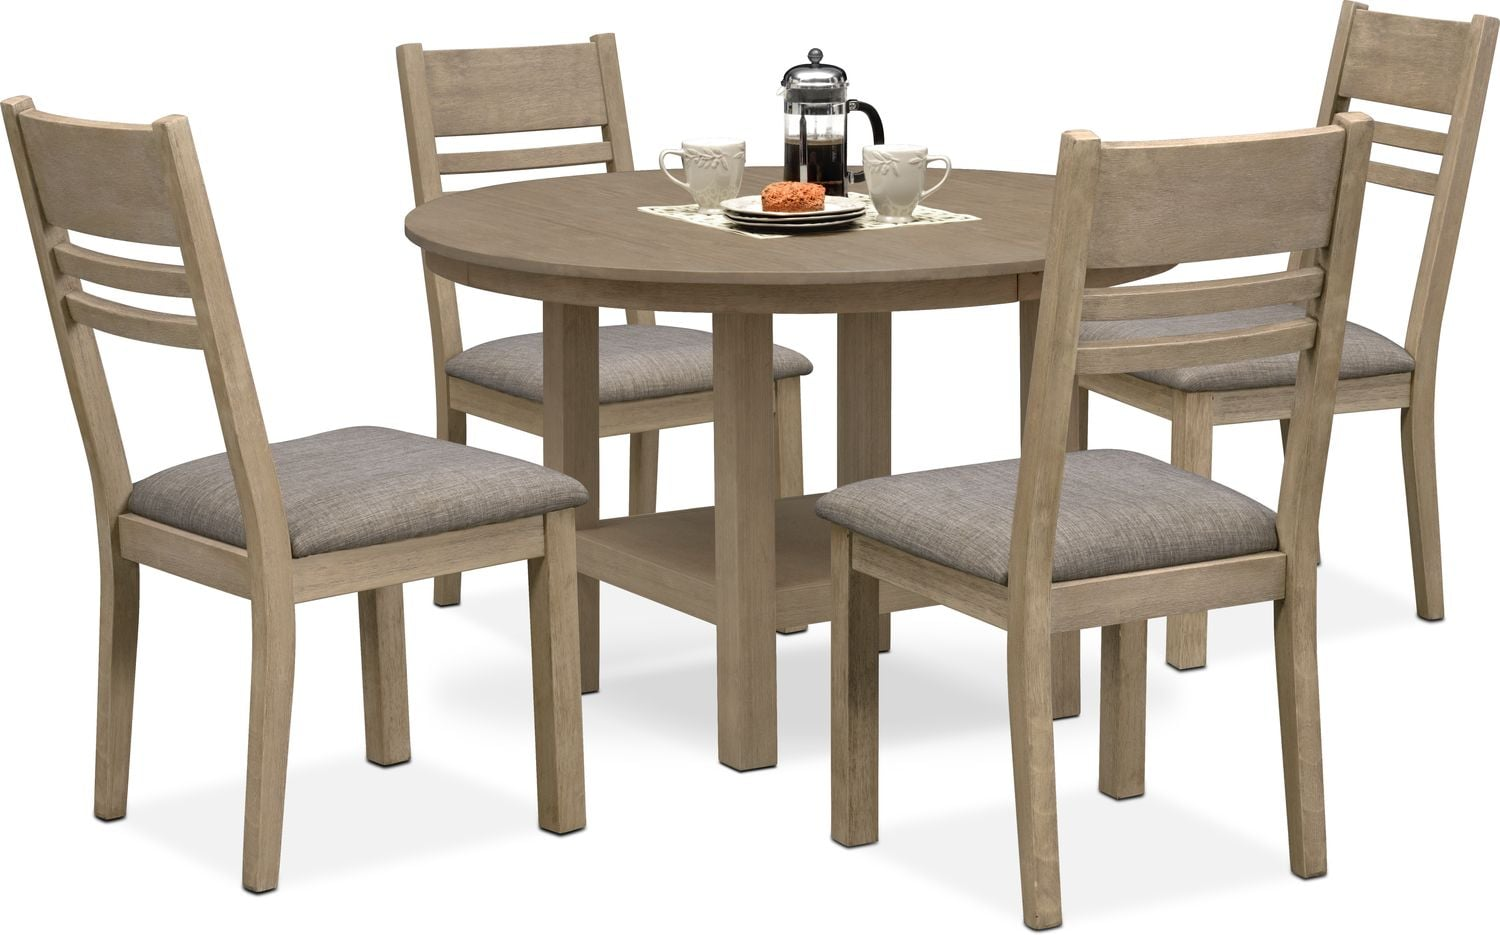 Tribeca Round Dining Table And 4 Side Chairs   Gray